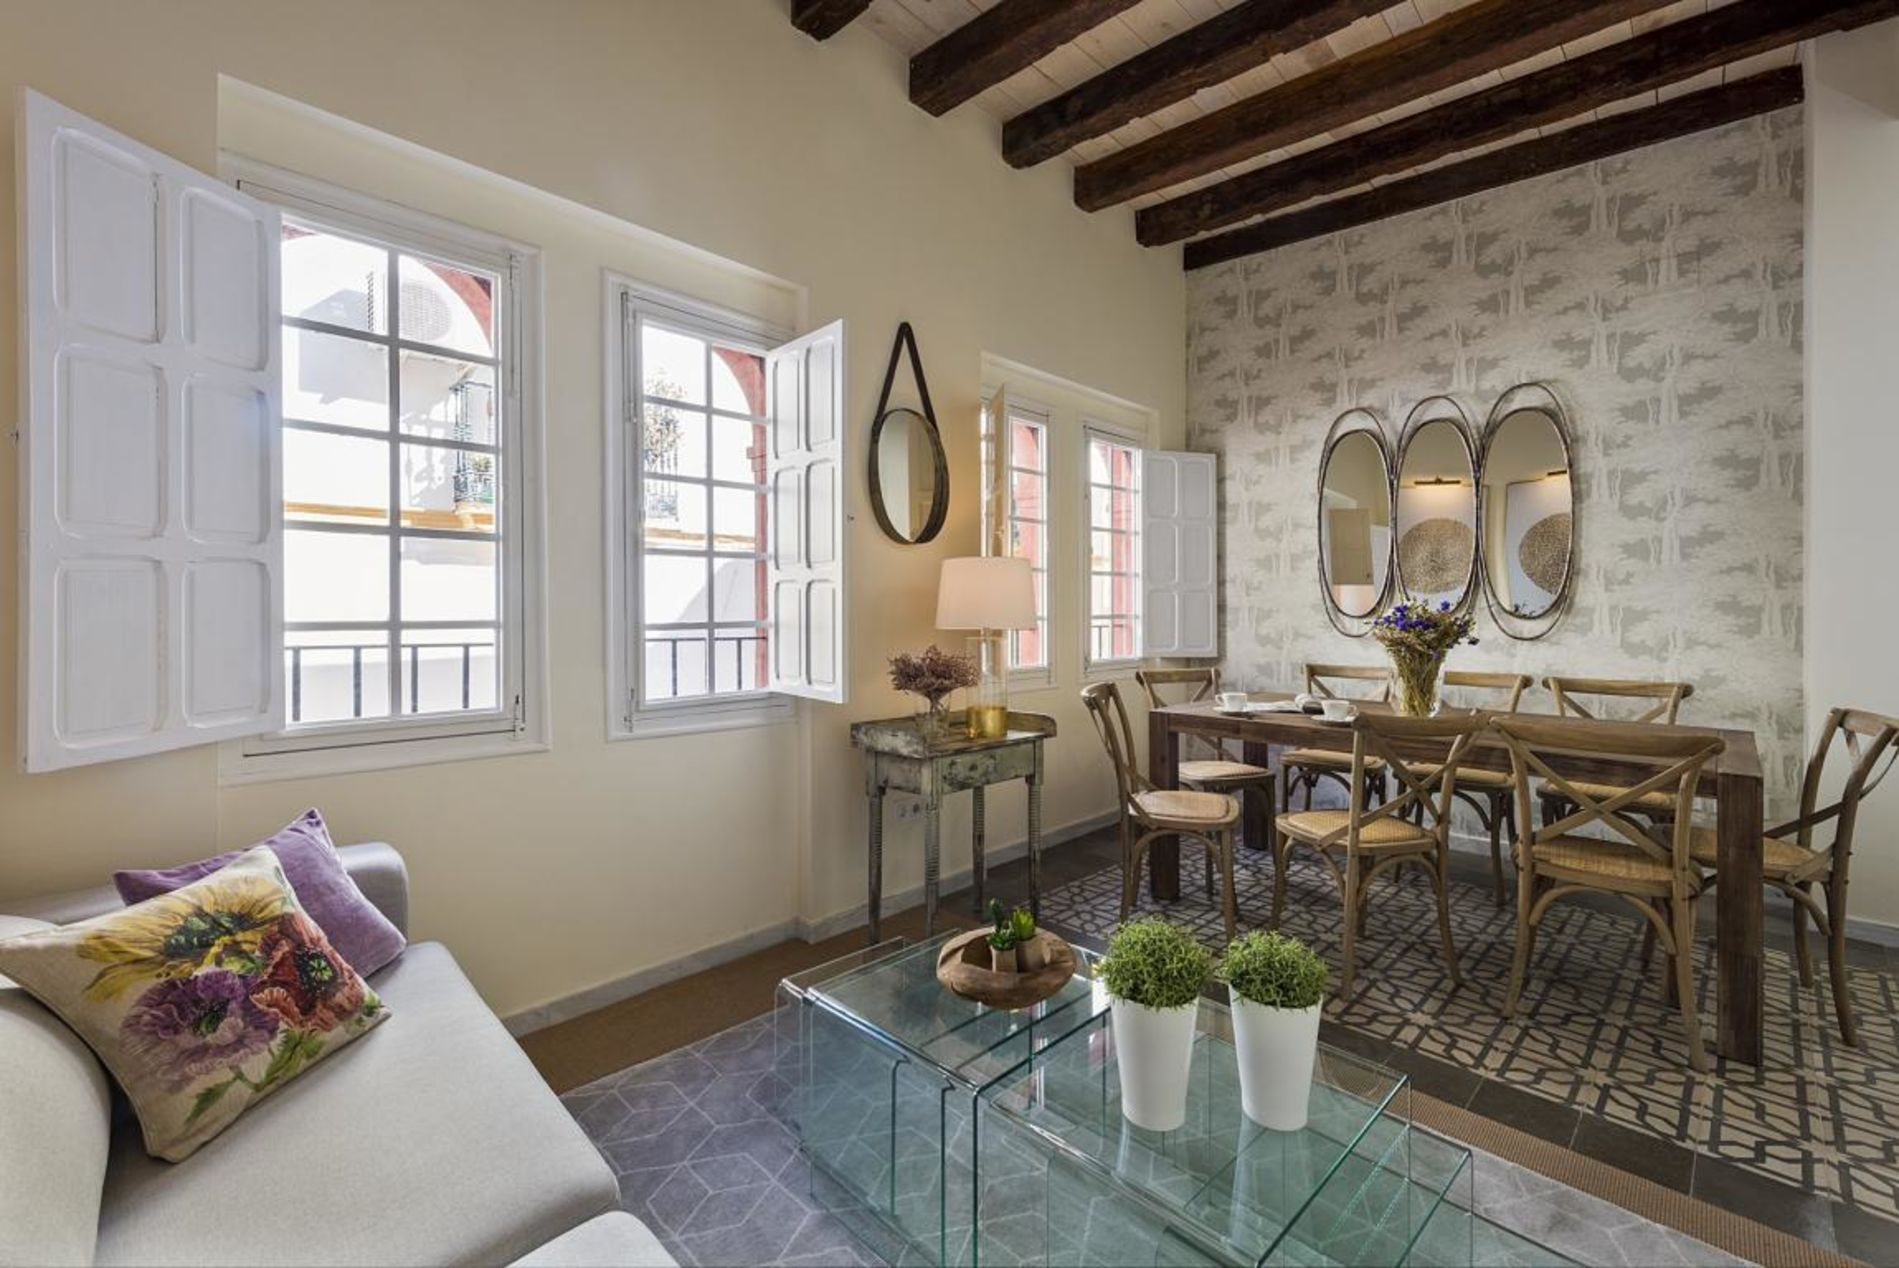 Large house with private terrace in Seville that welcomes pets